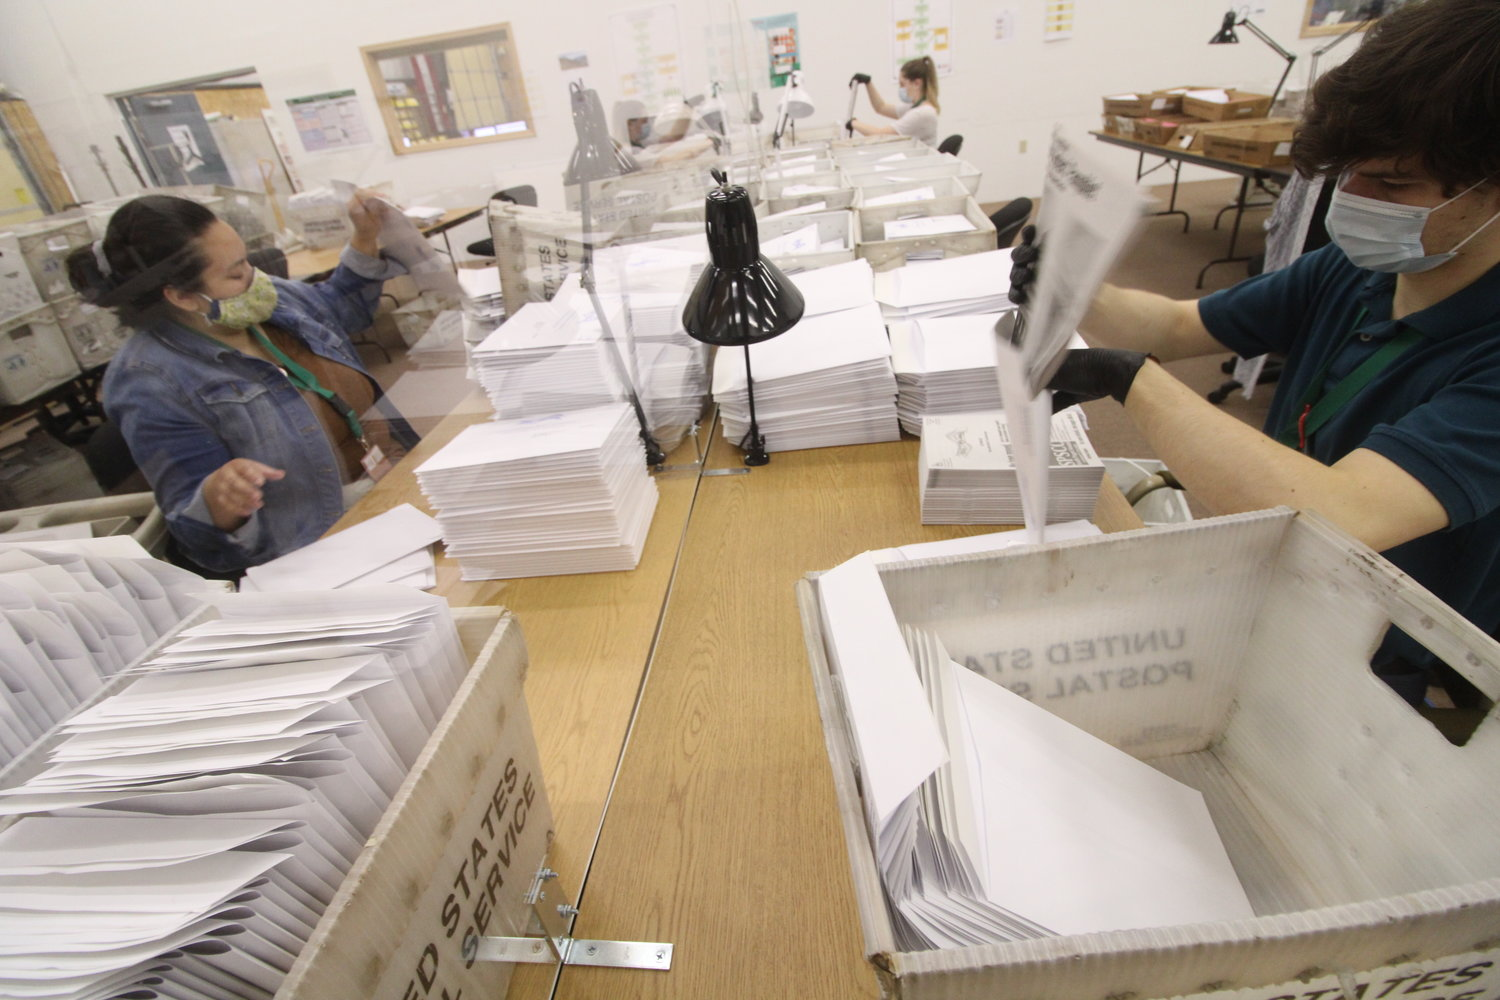 Back in June, election staff prepare voters' pamphlets at the Ballot Processing Center.